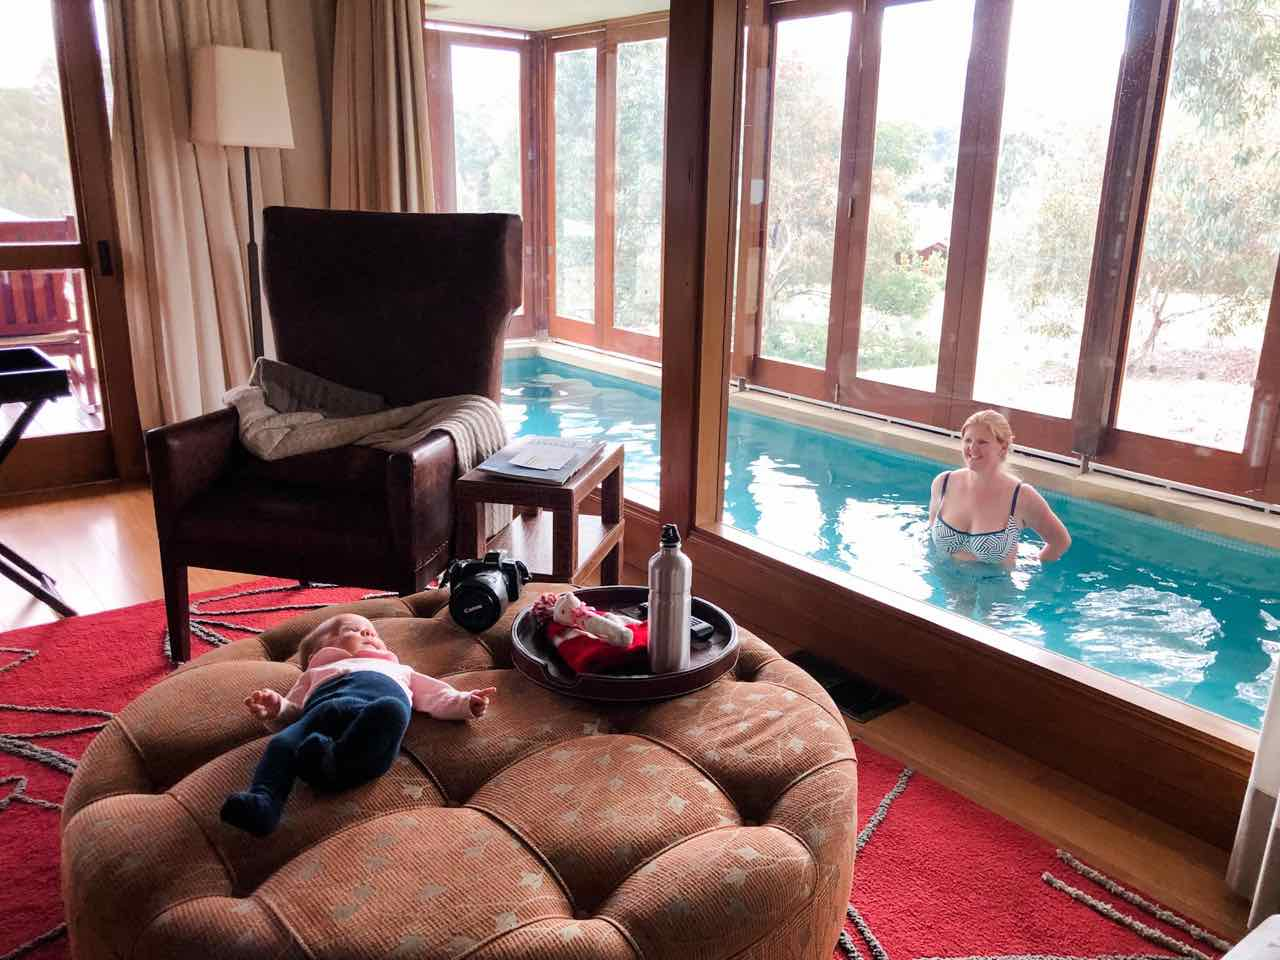 baby lying on an ottoman in the room at Emirates One & Only Wolgan Valley, while mum is in the in-room pool looking on